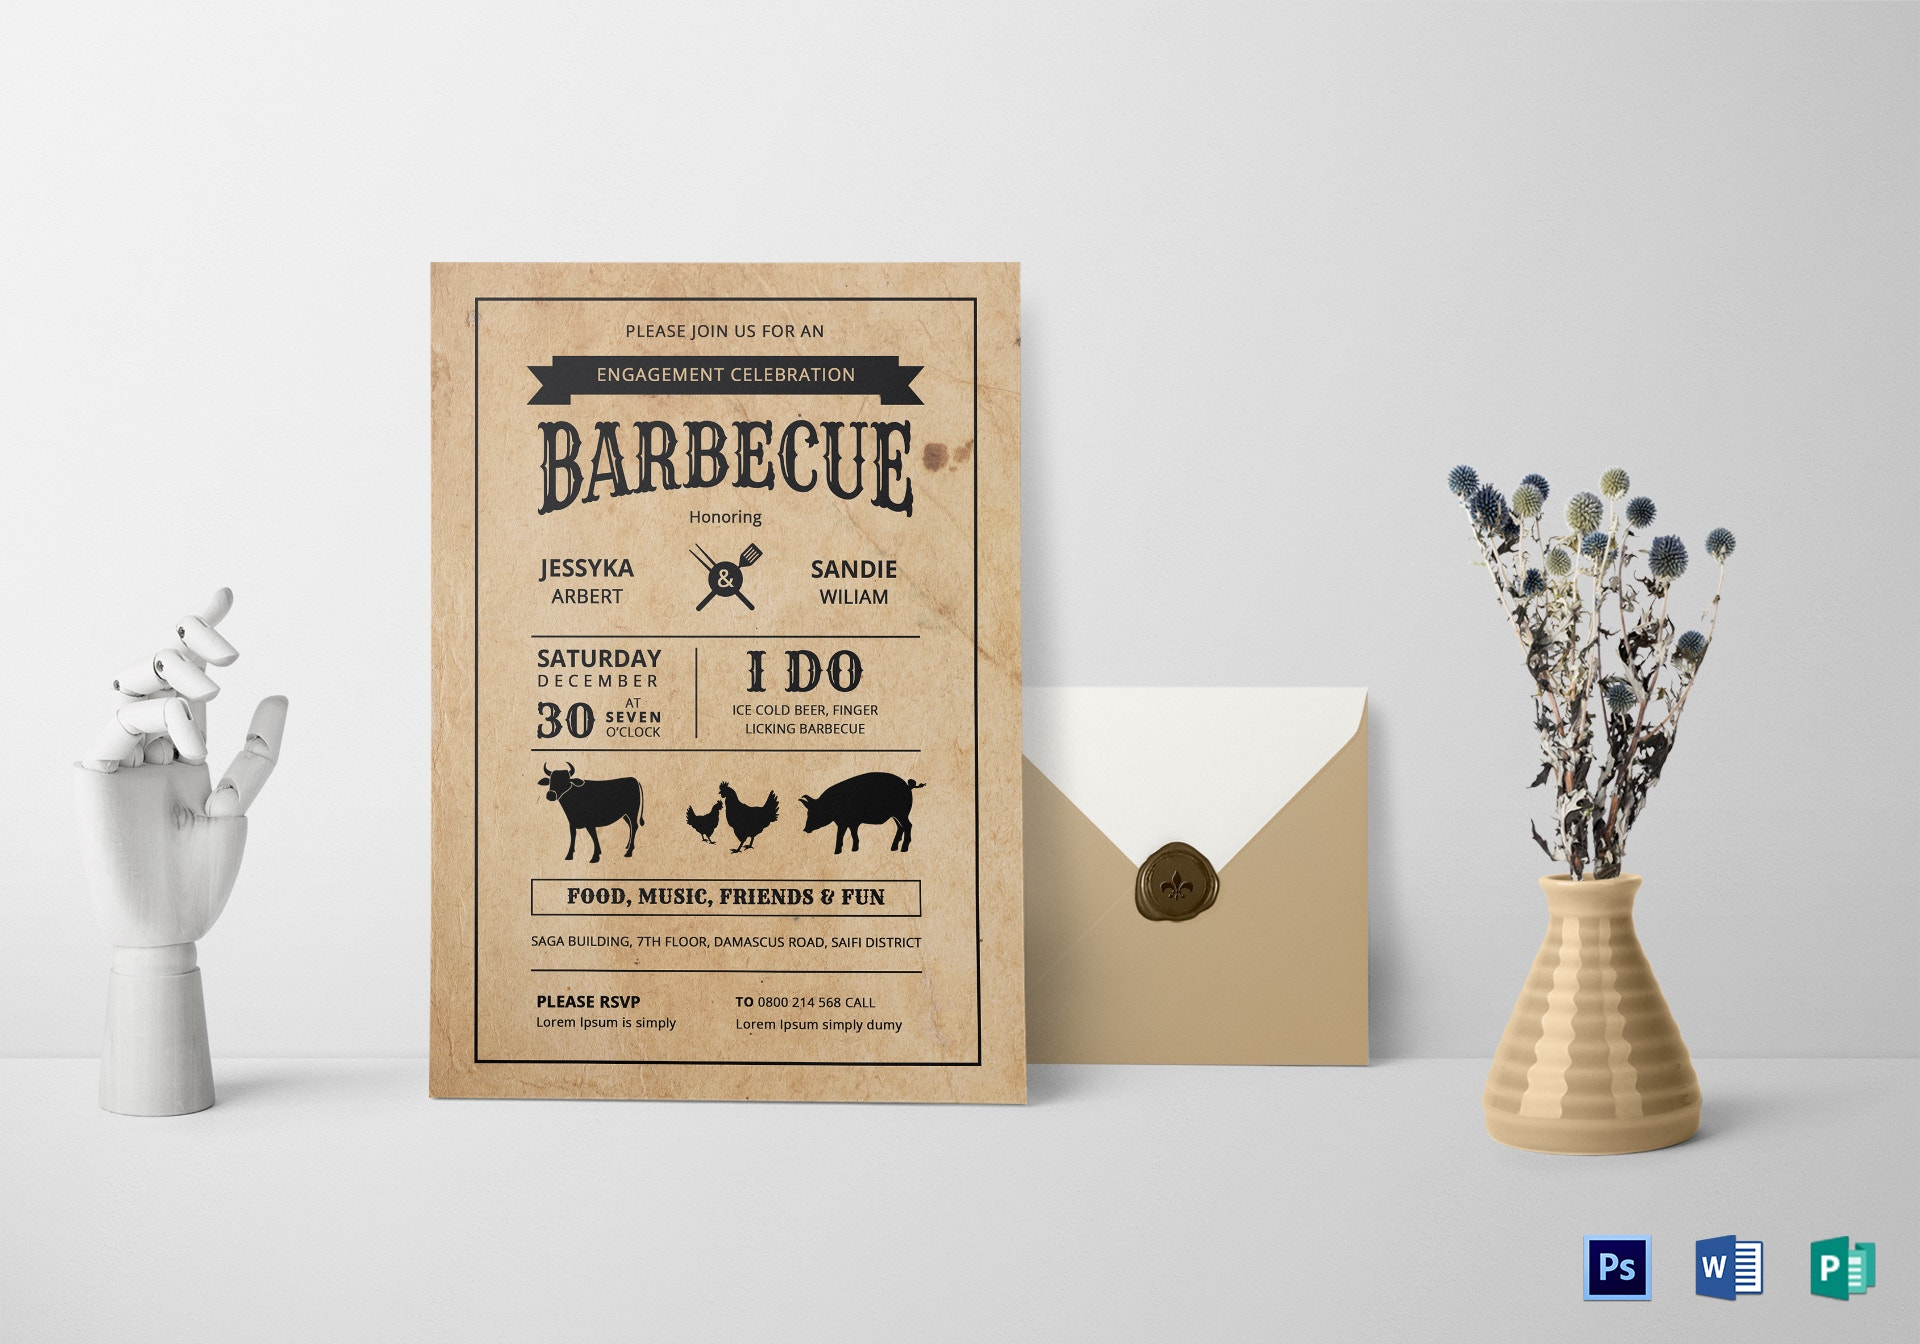 barbecue engagement party invitation template